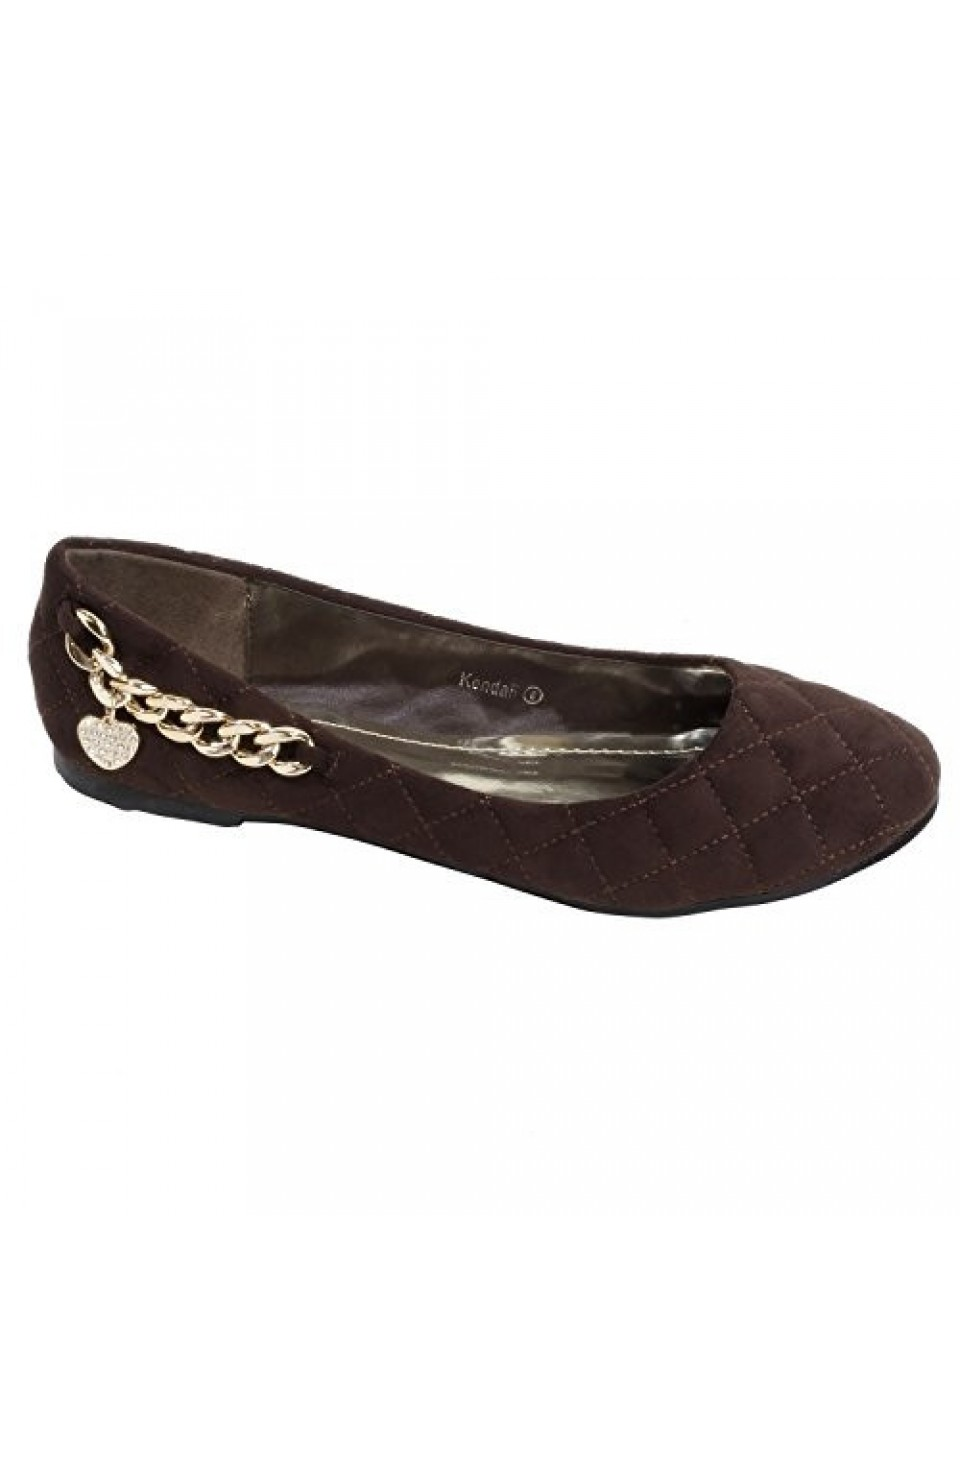 Women's Brown Kendall Manmade Quilted Flat with Bold Charm Chain